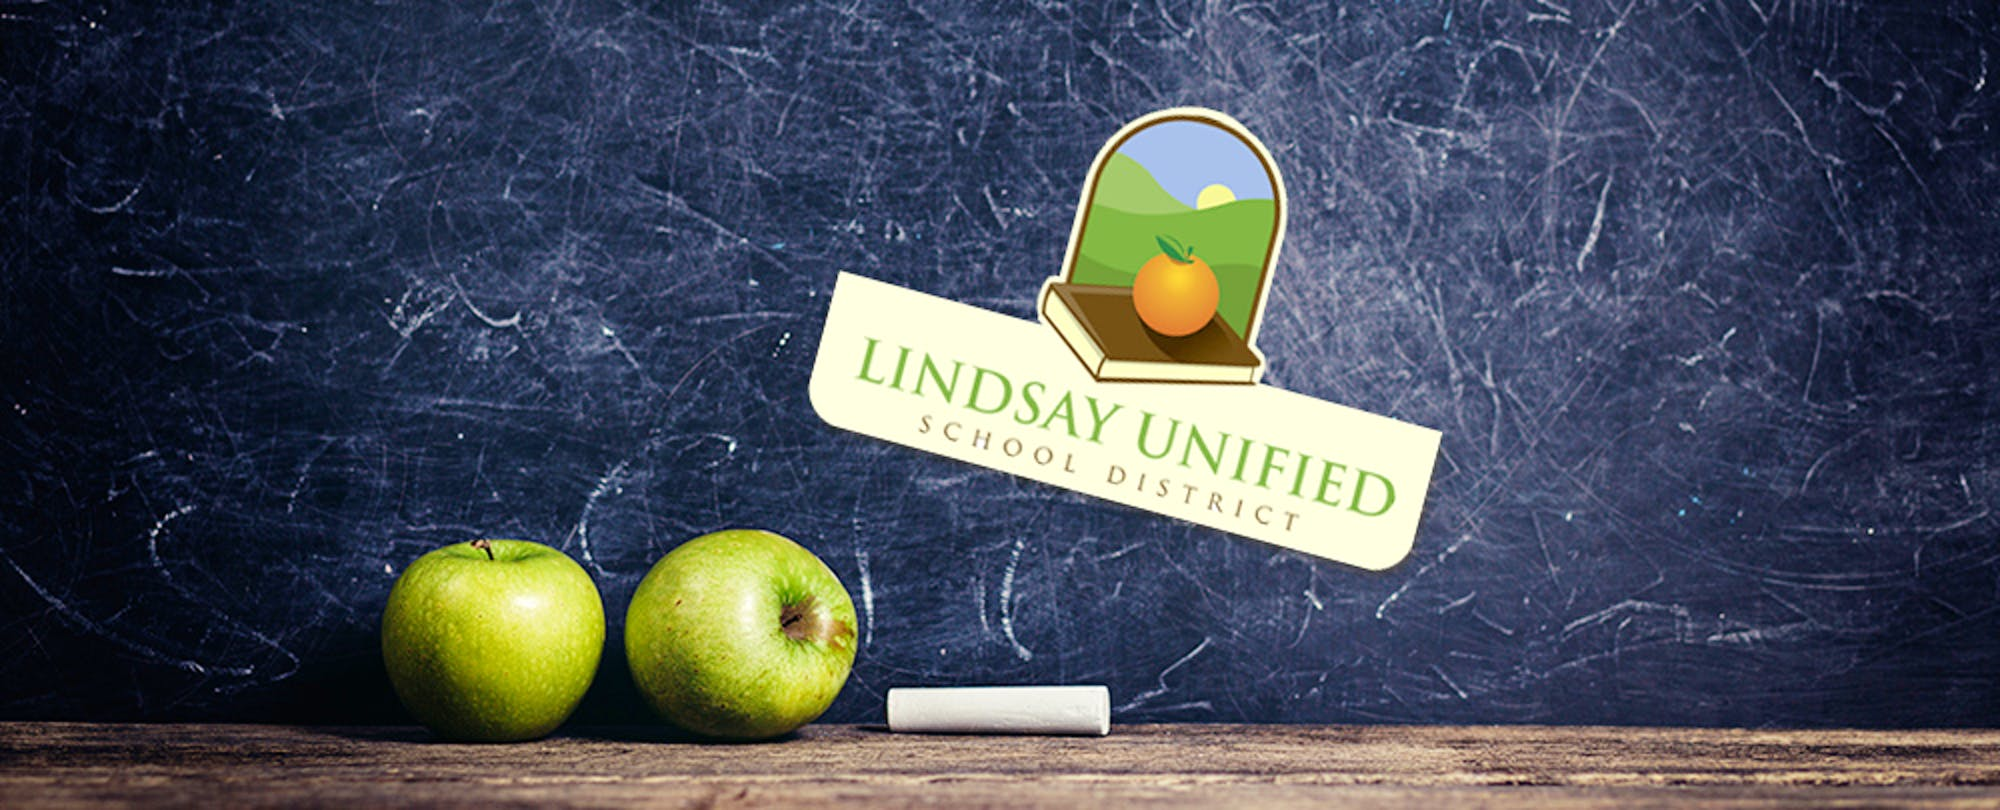 Lindsay Unified Joins the Growing Number of Schools Franchising Their Models to Other Systems